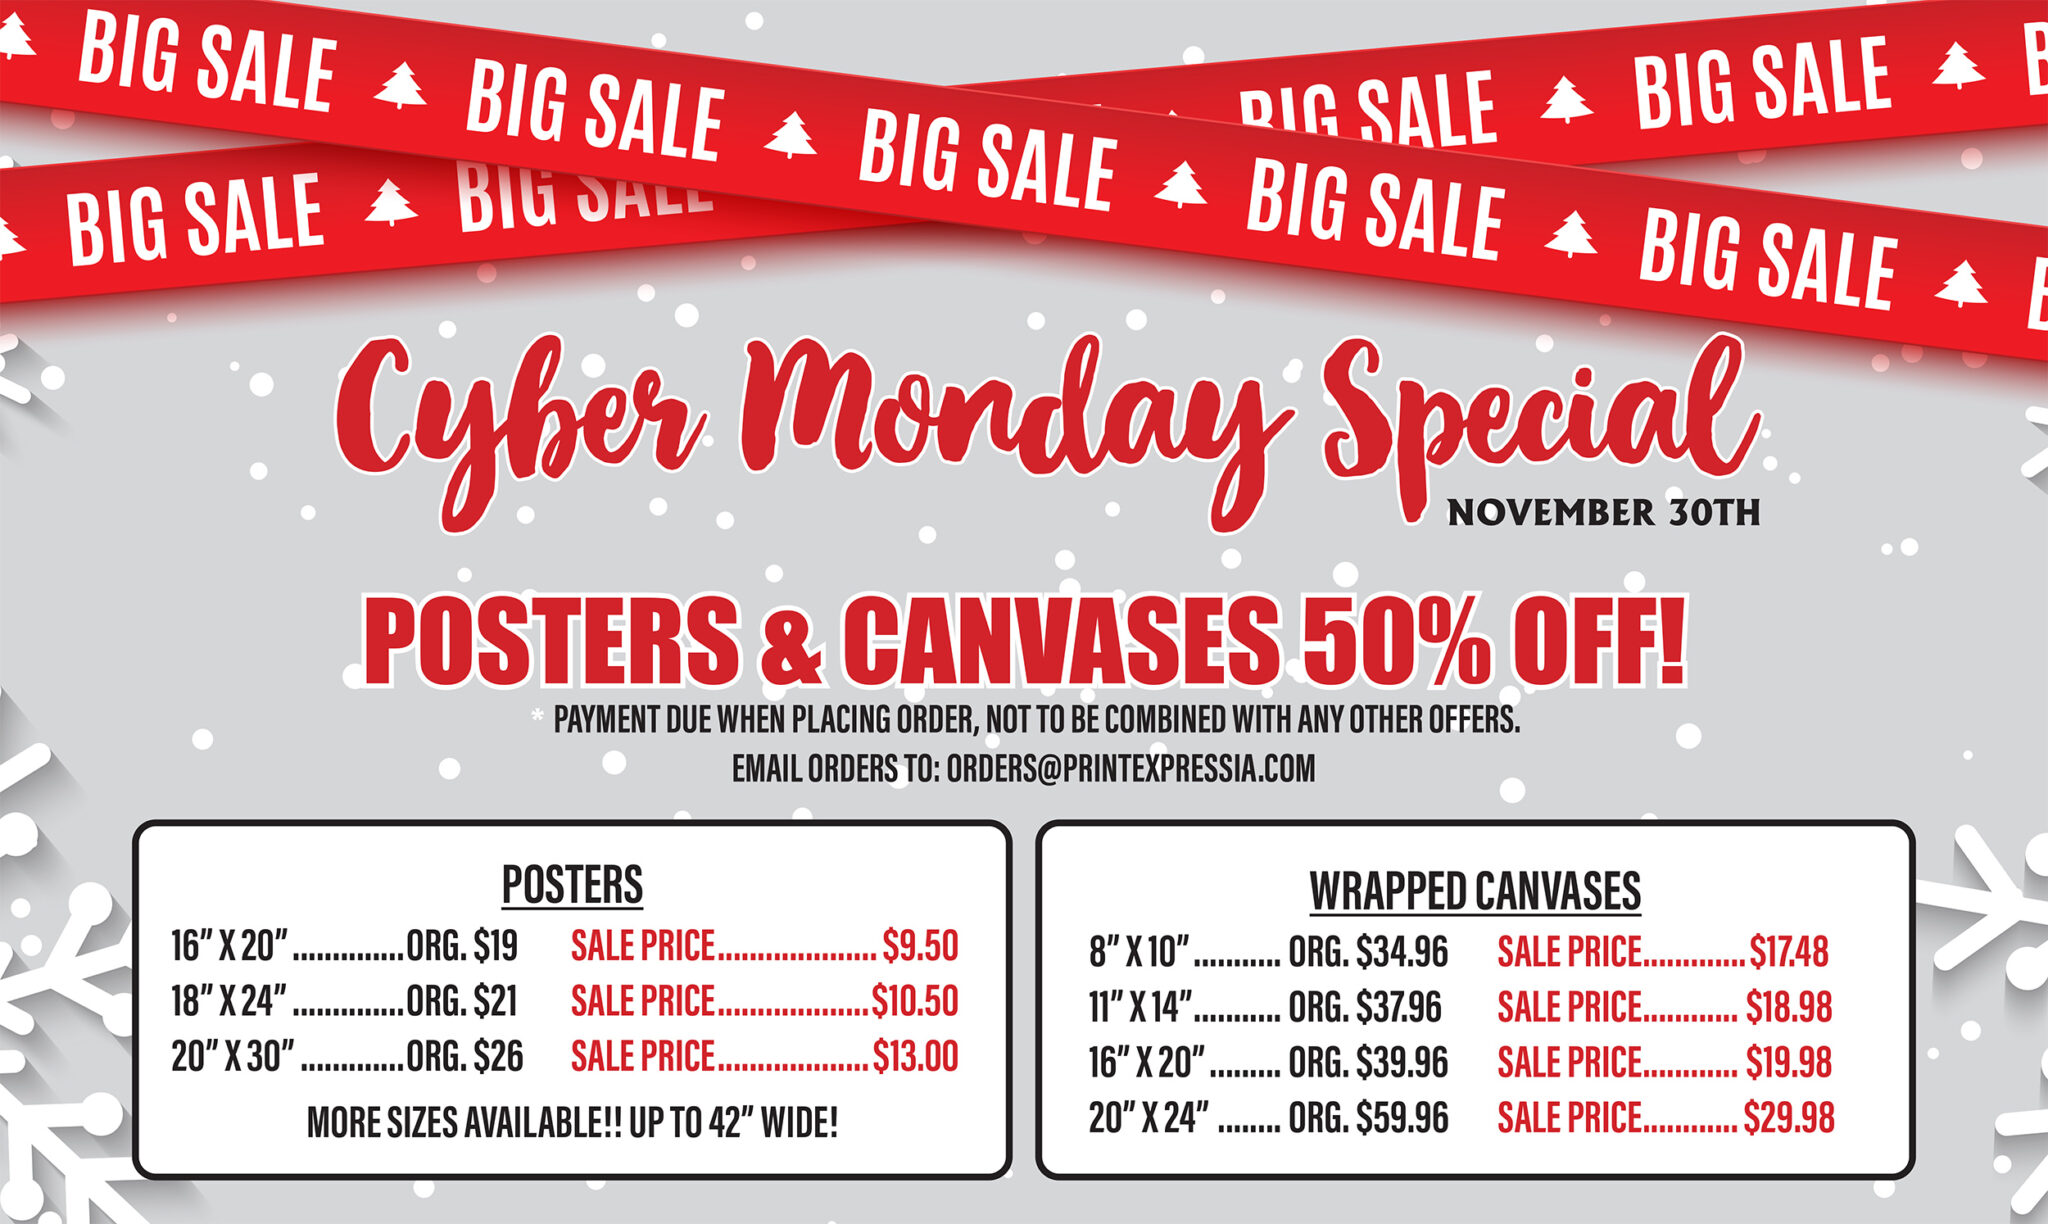 CYBER MONDAY pricing